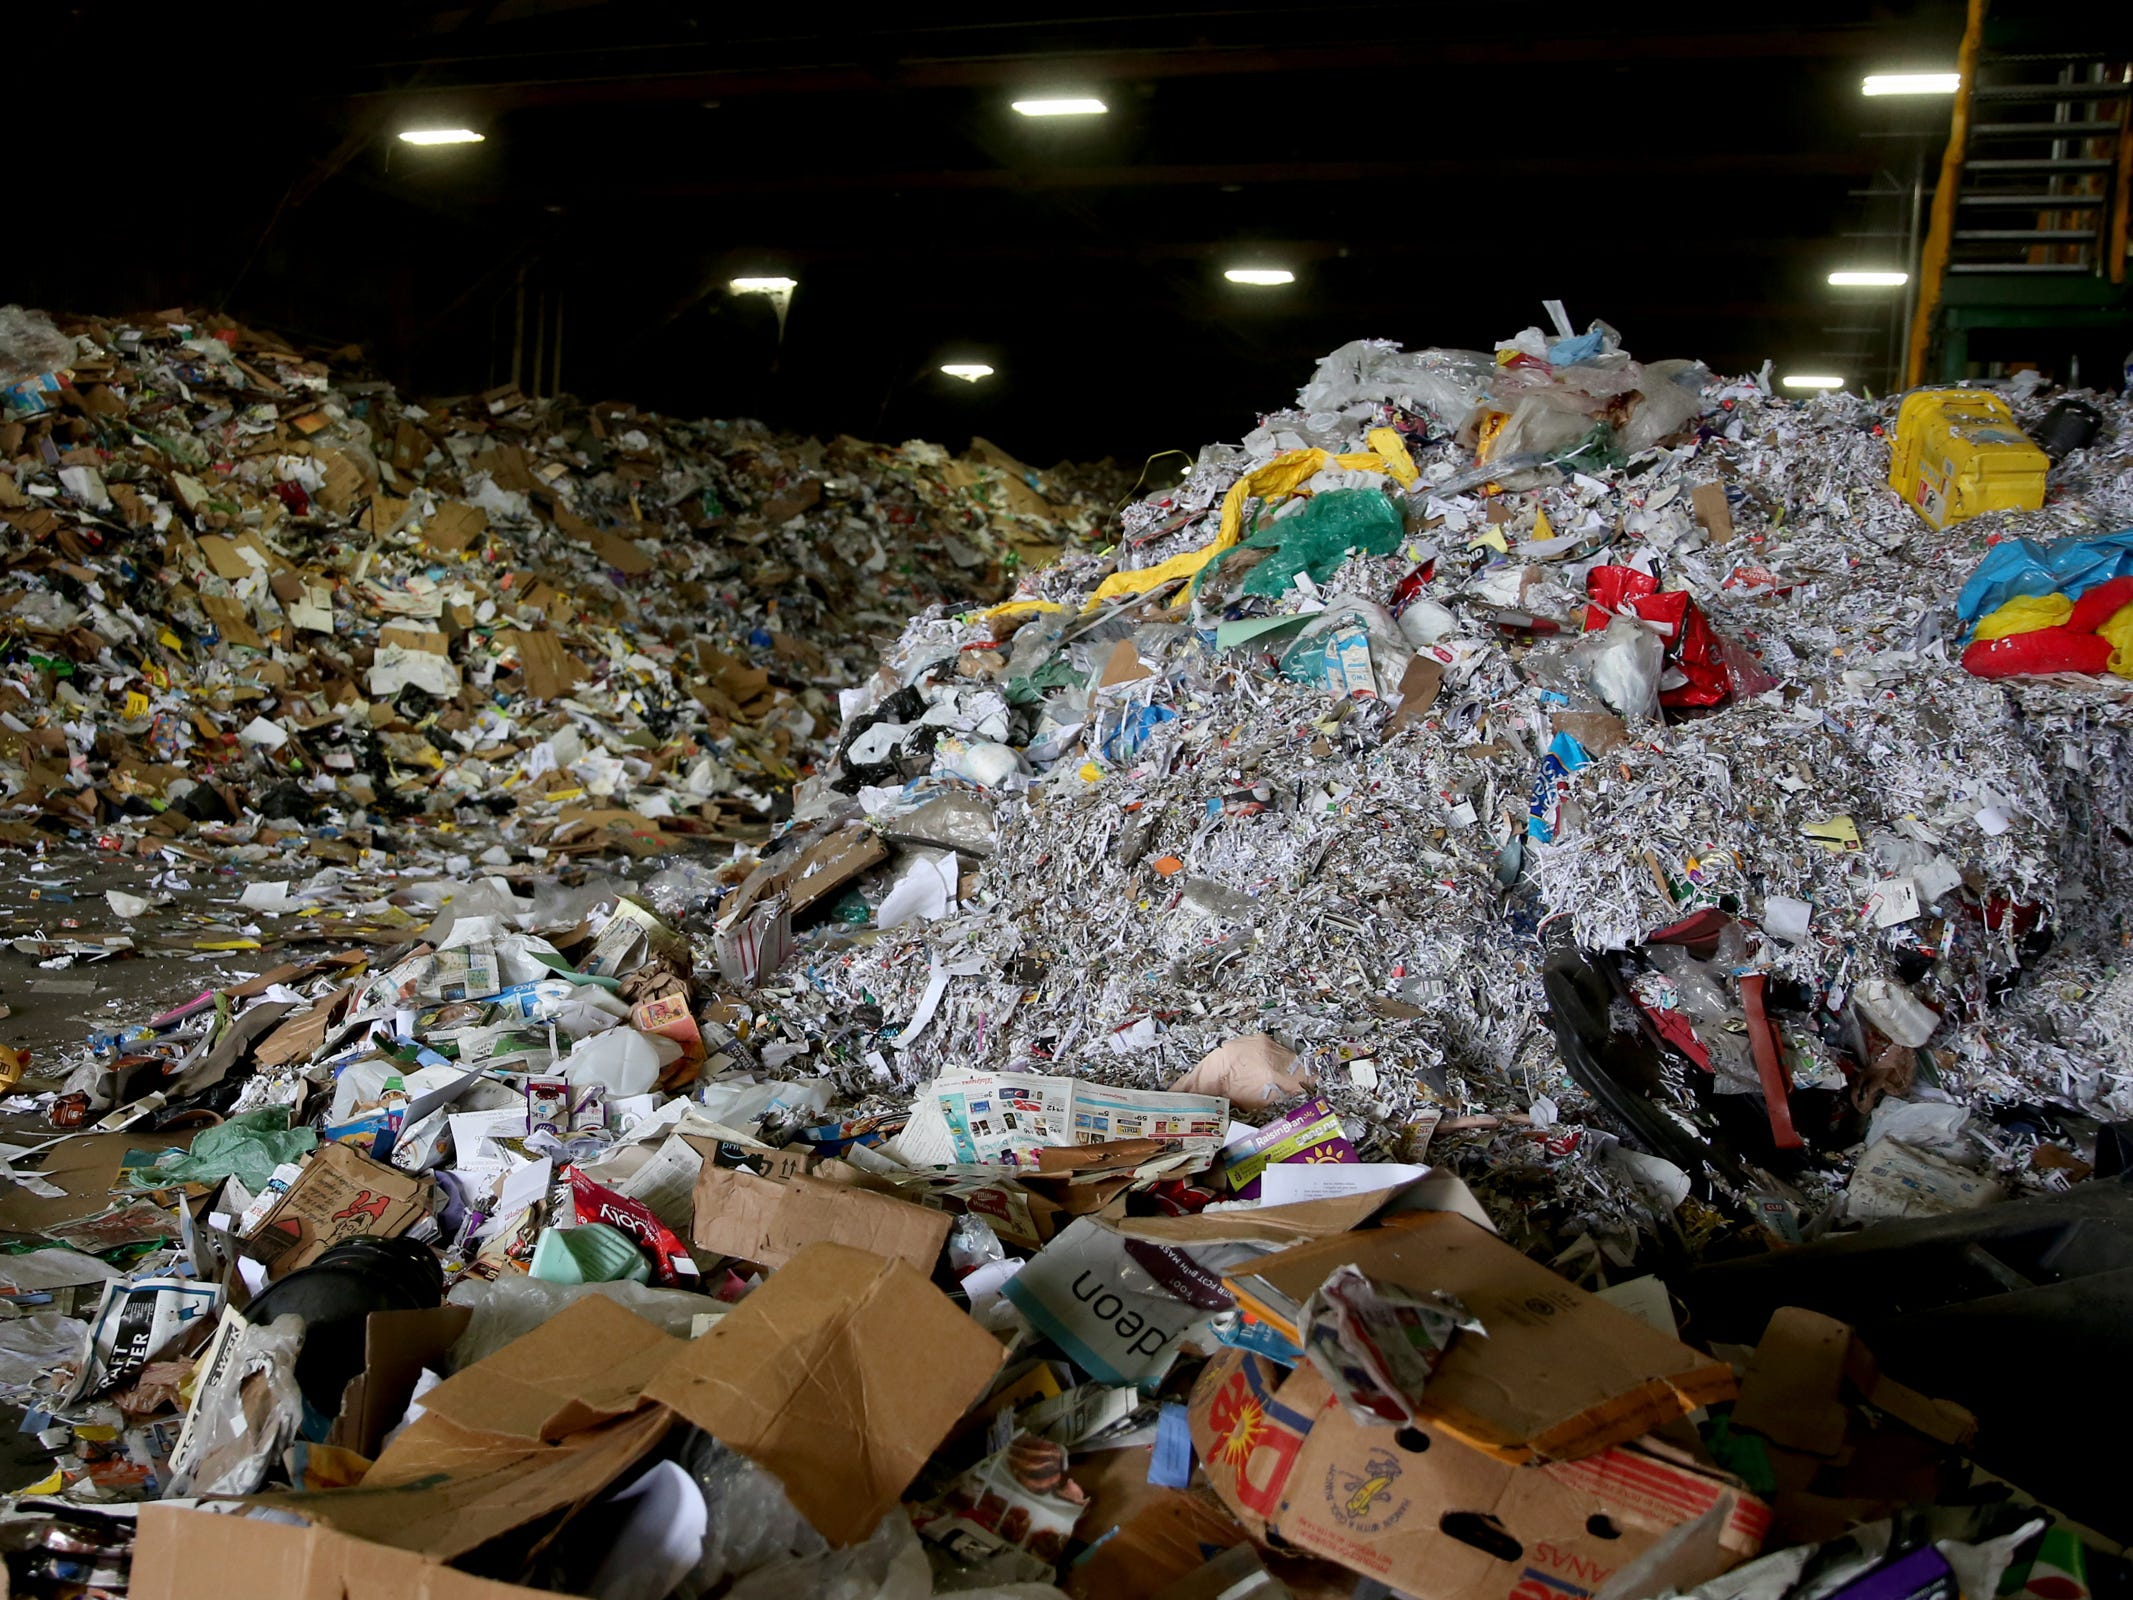 Trash that cannot be recycled or sold piles up at Garten Recycling in Salem on Friday, Aug. 3, 2018.